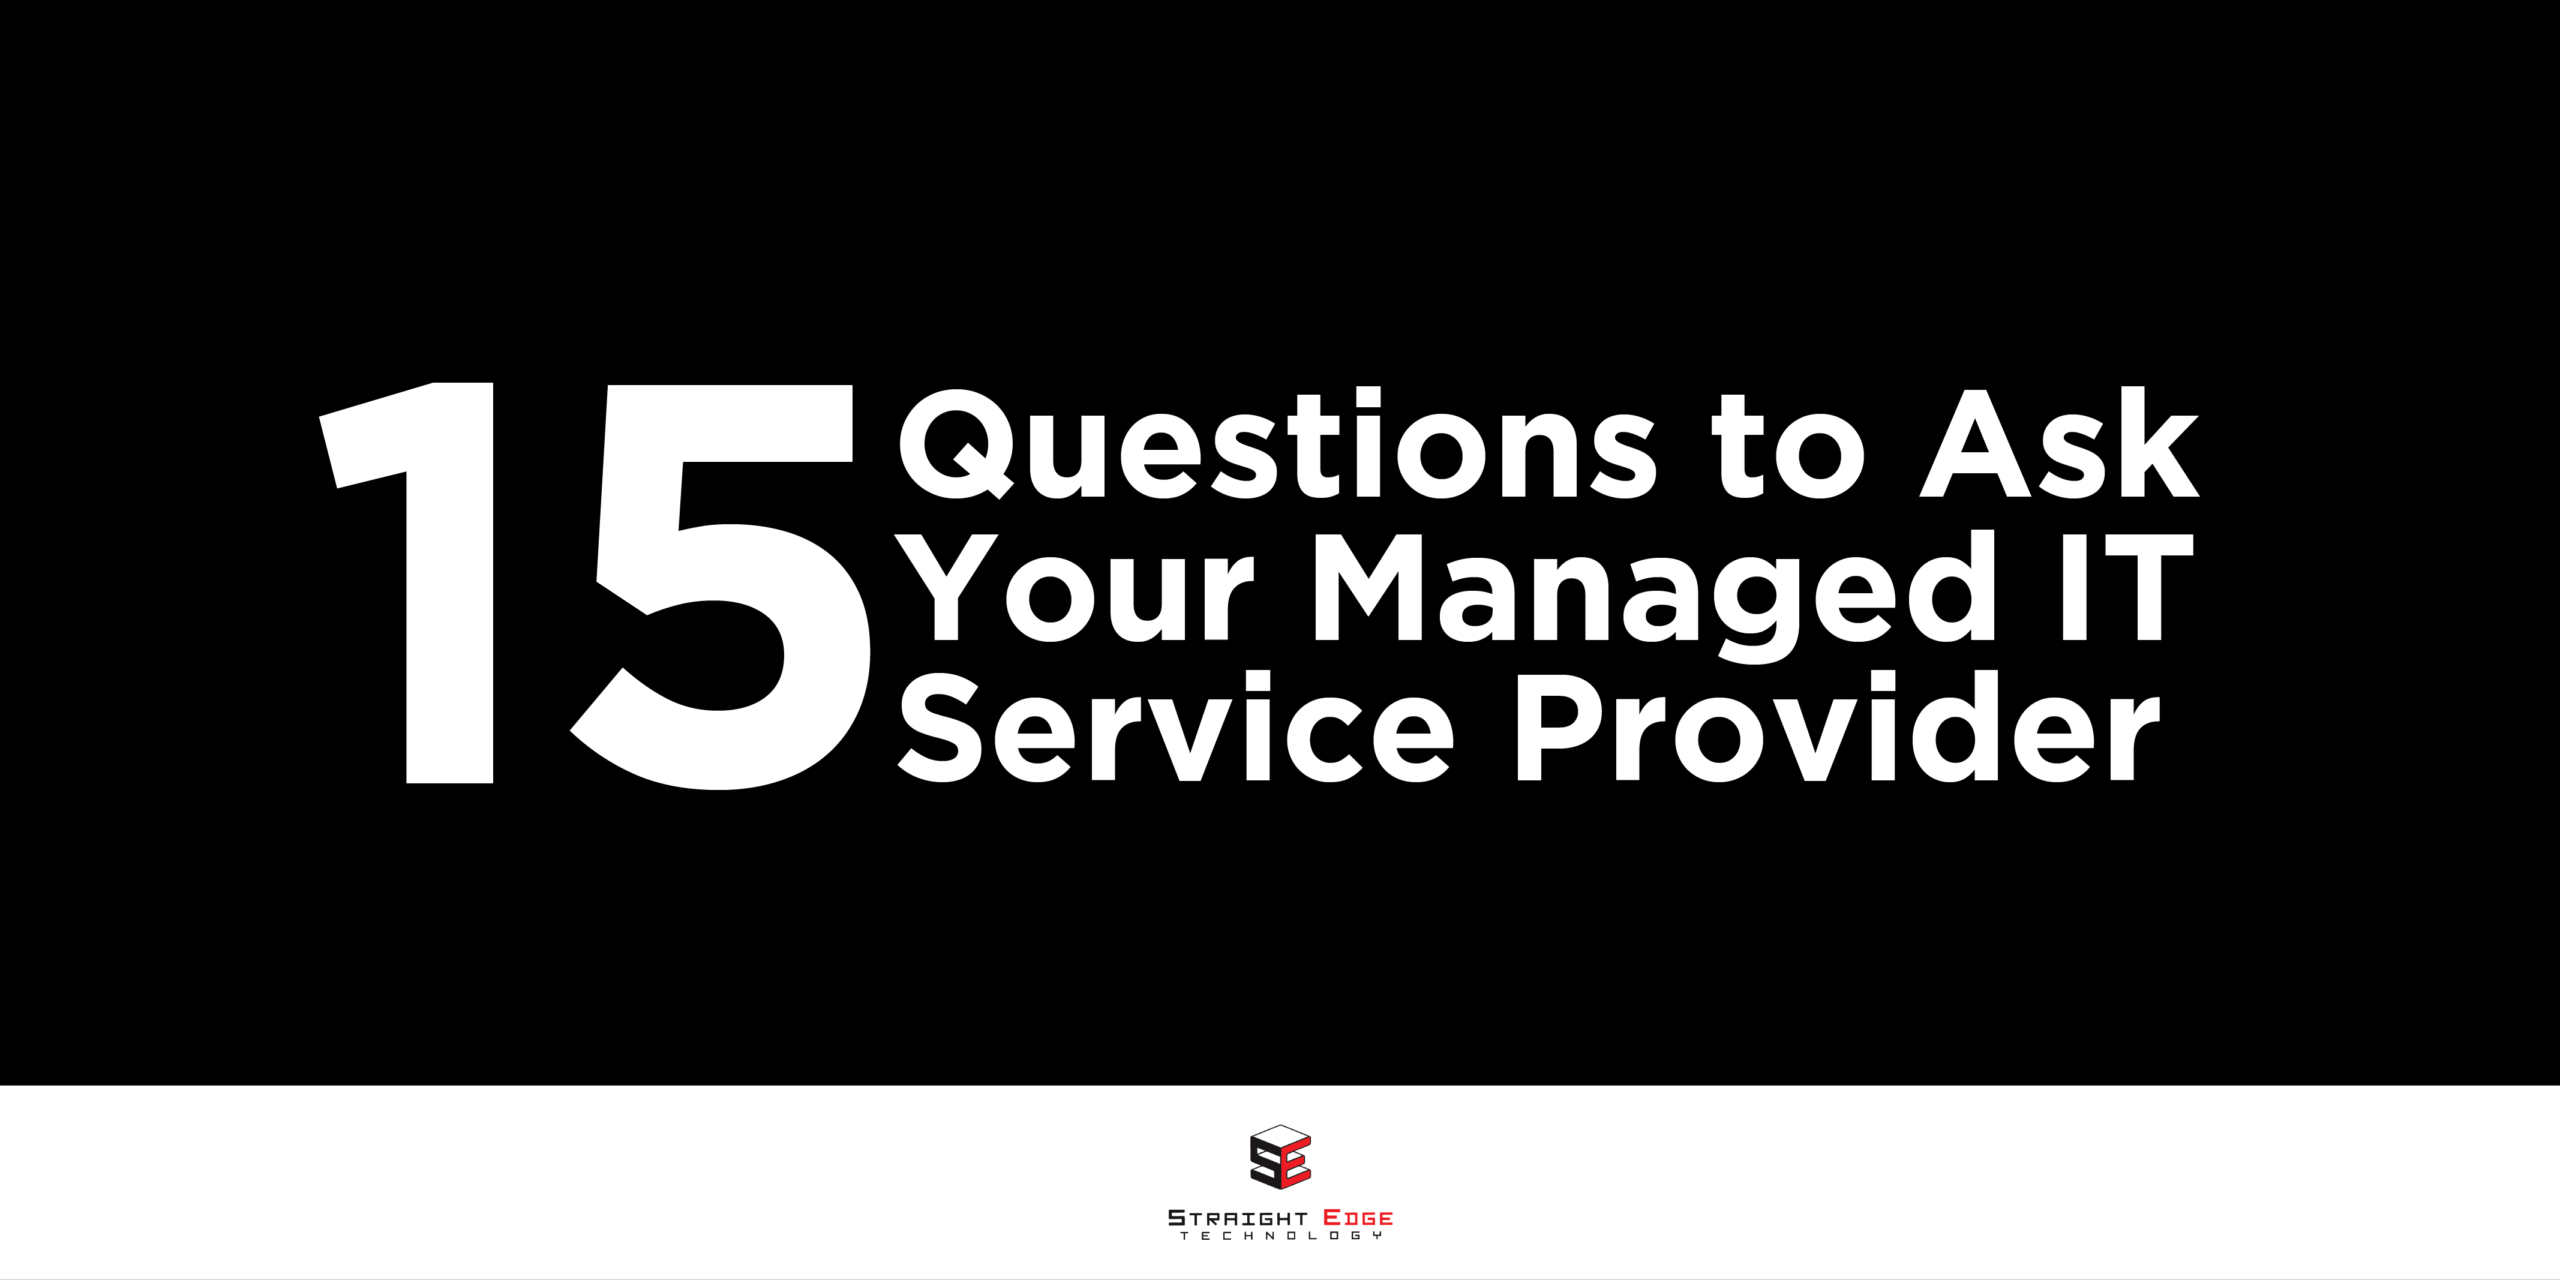 15 Questions to Ask Your Managed IT Service Provider 8